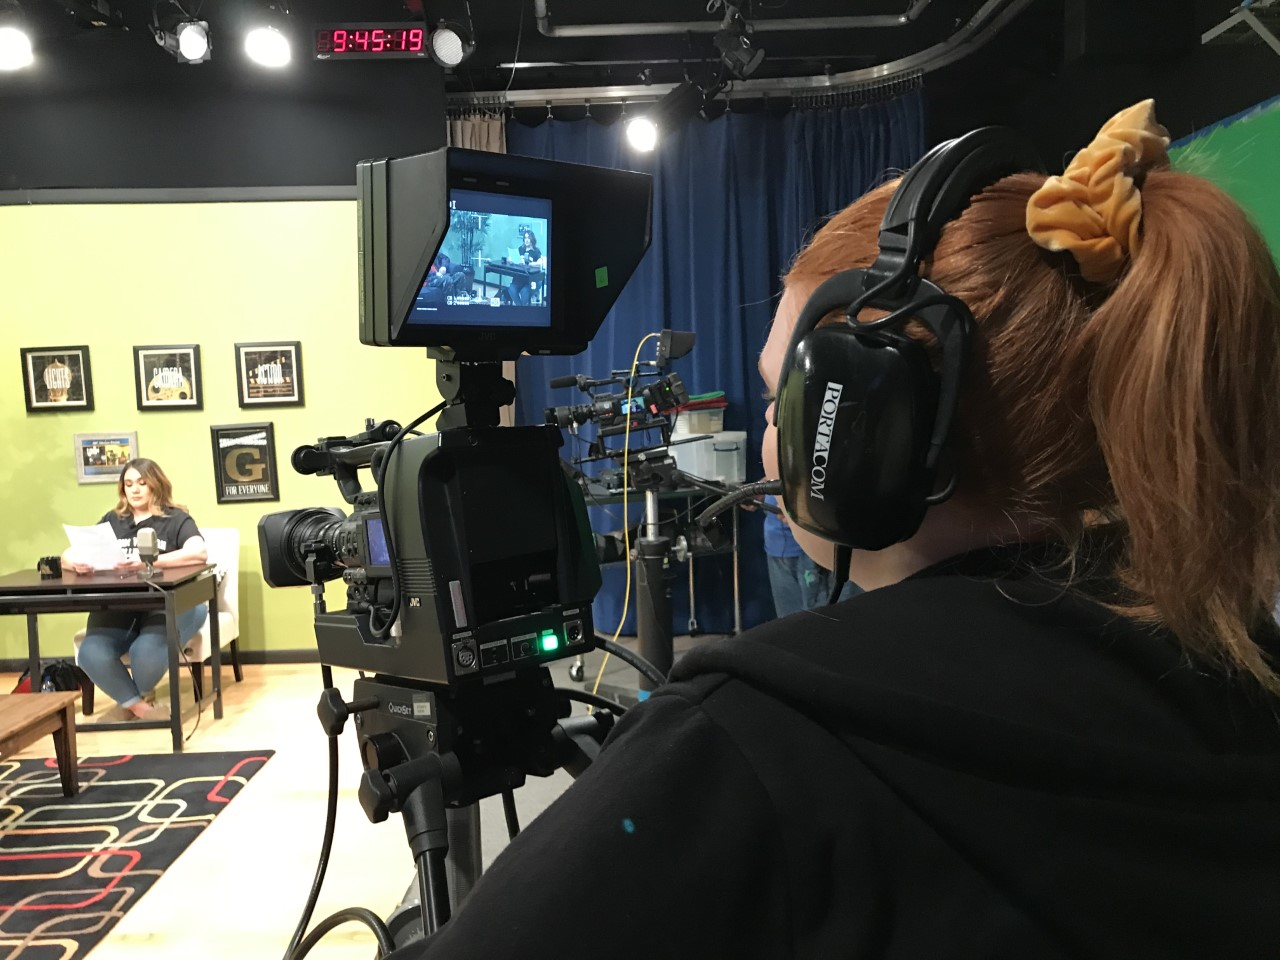 A person stands behind a camera with headphones on, recording the show